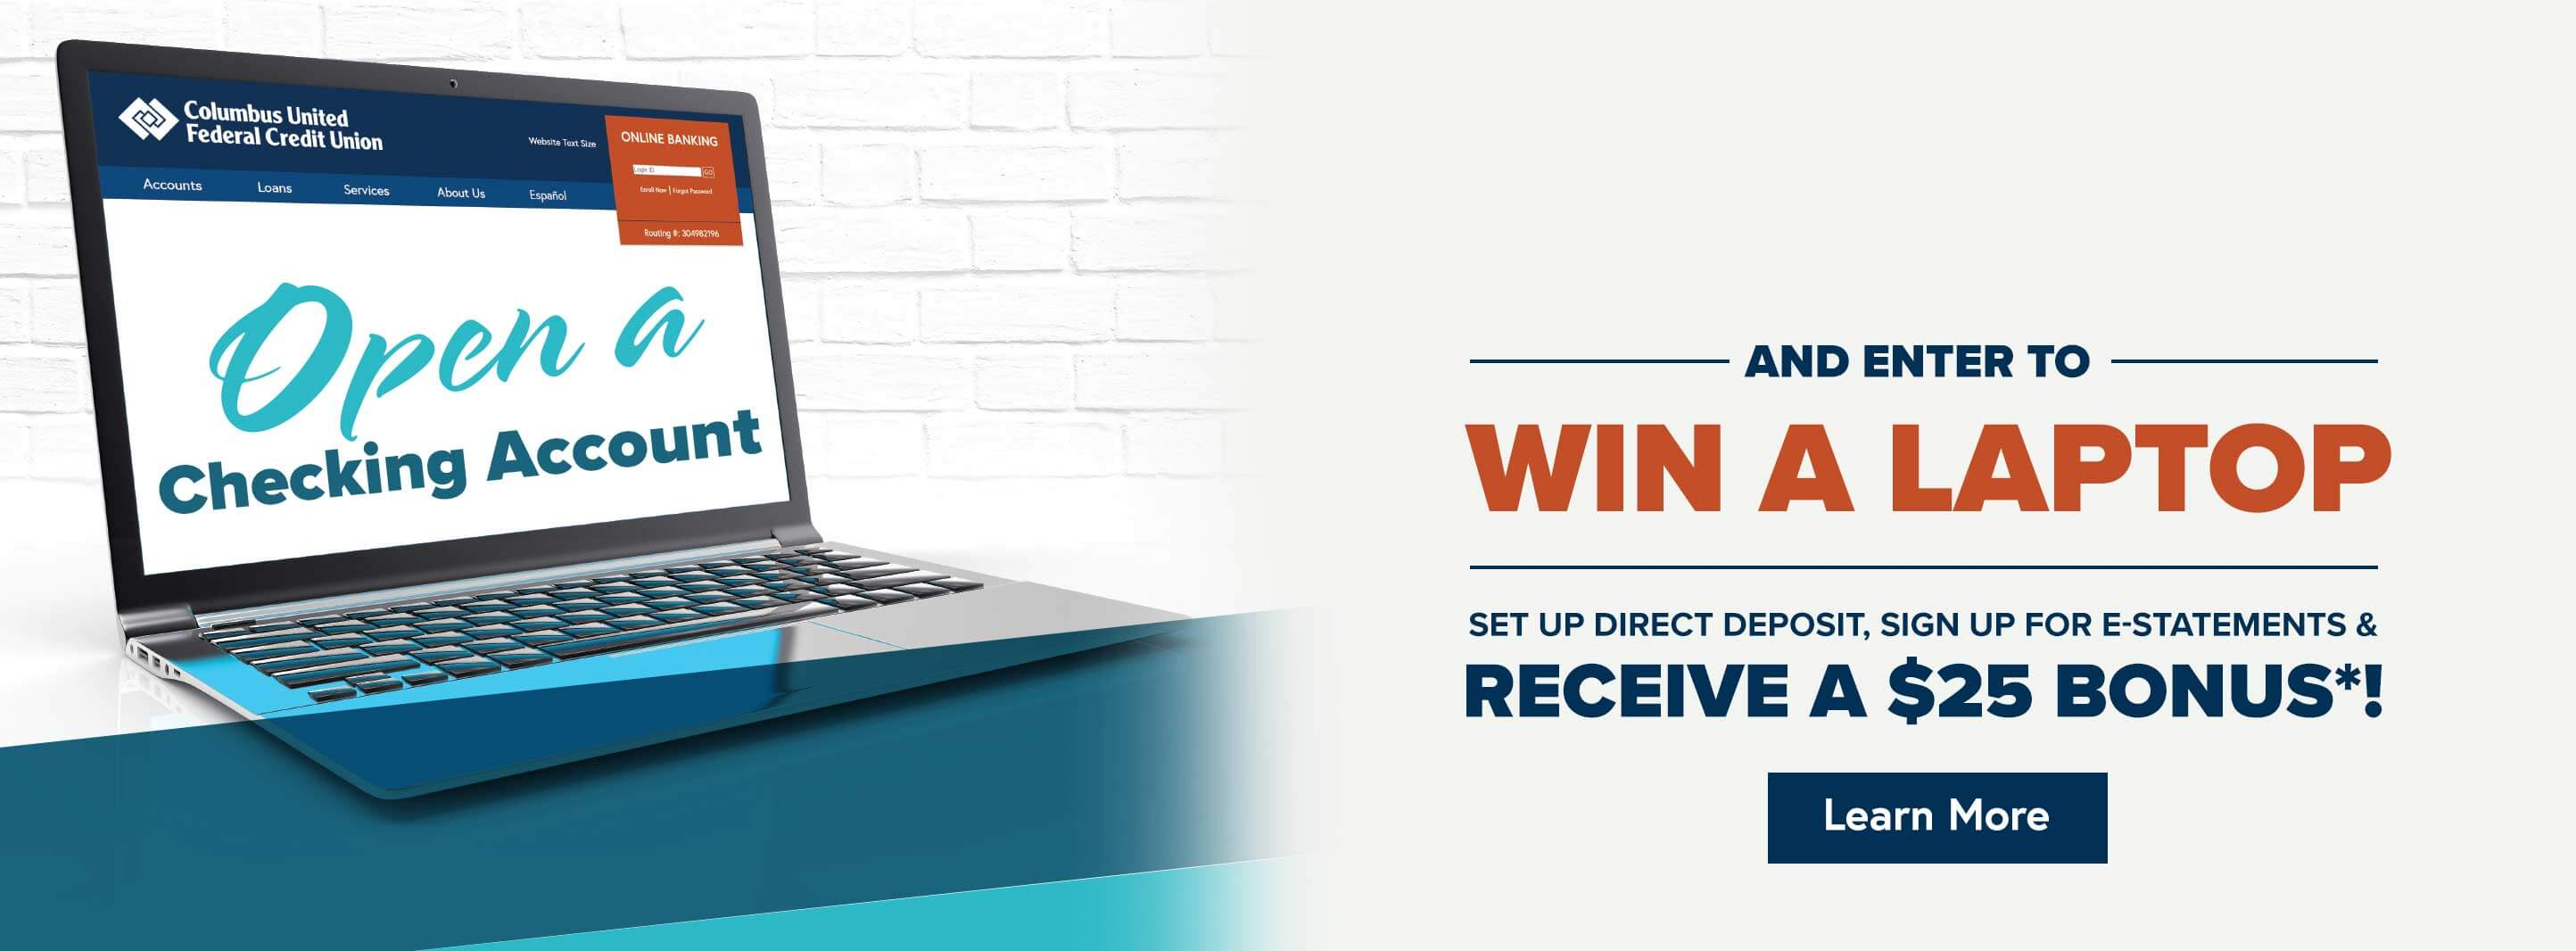 Open checking account and enter to win a laptop. Set up direct deposit, sign up for e-statements & receiv$25 bonus*! Learn More